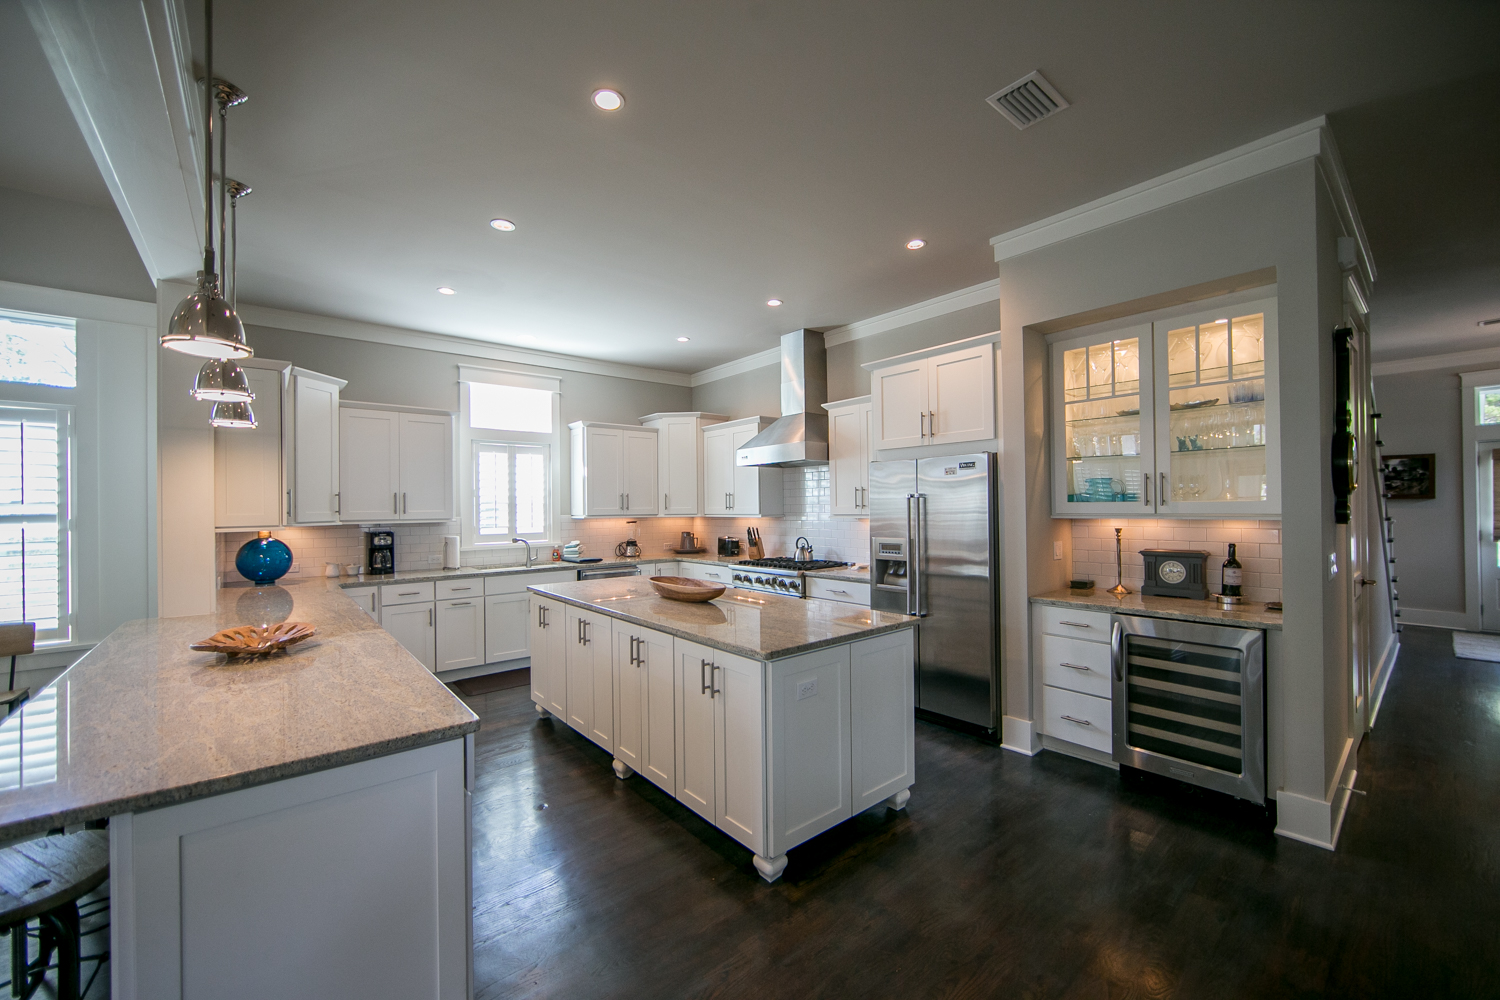 Grand gourmet chef's kitchen with Viking stainless steel appliances and a spacious wine bar